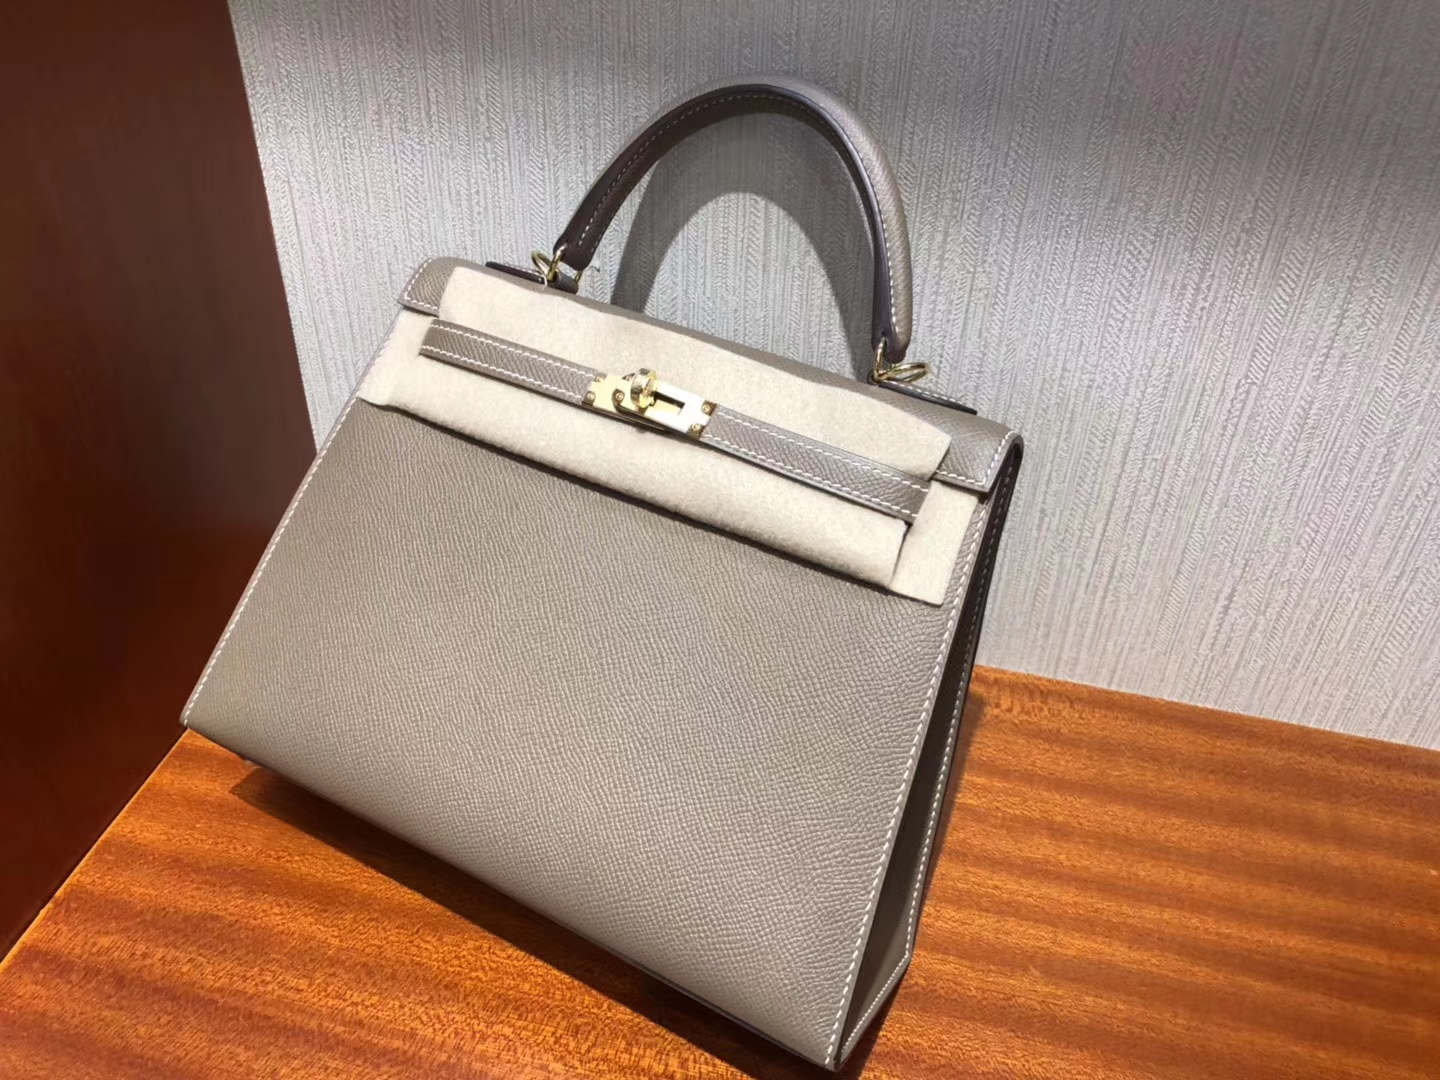 Australia Hermes Kelly bag 25cm CK18大象灰Etoupe Epsom牛皮 金扣